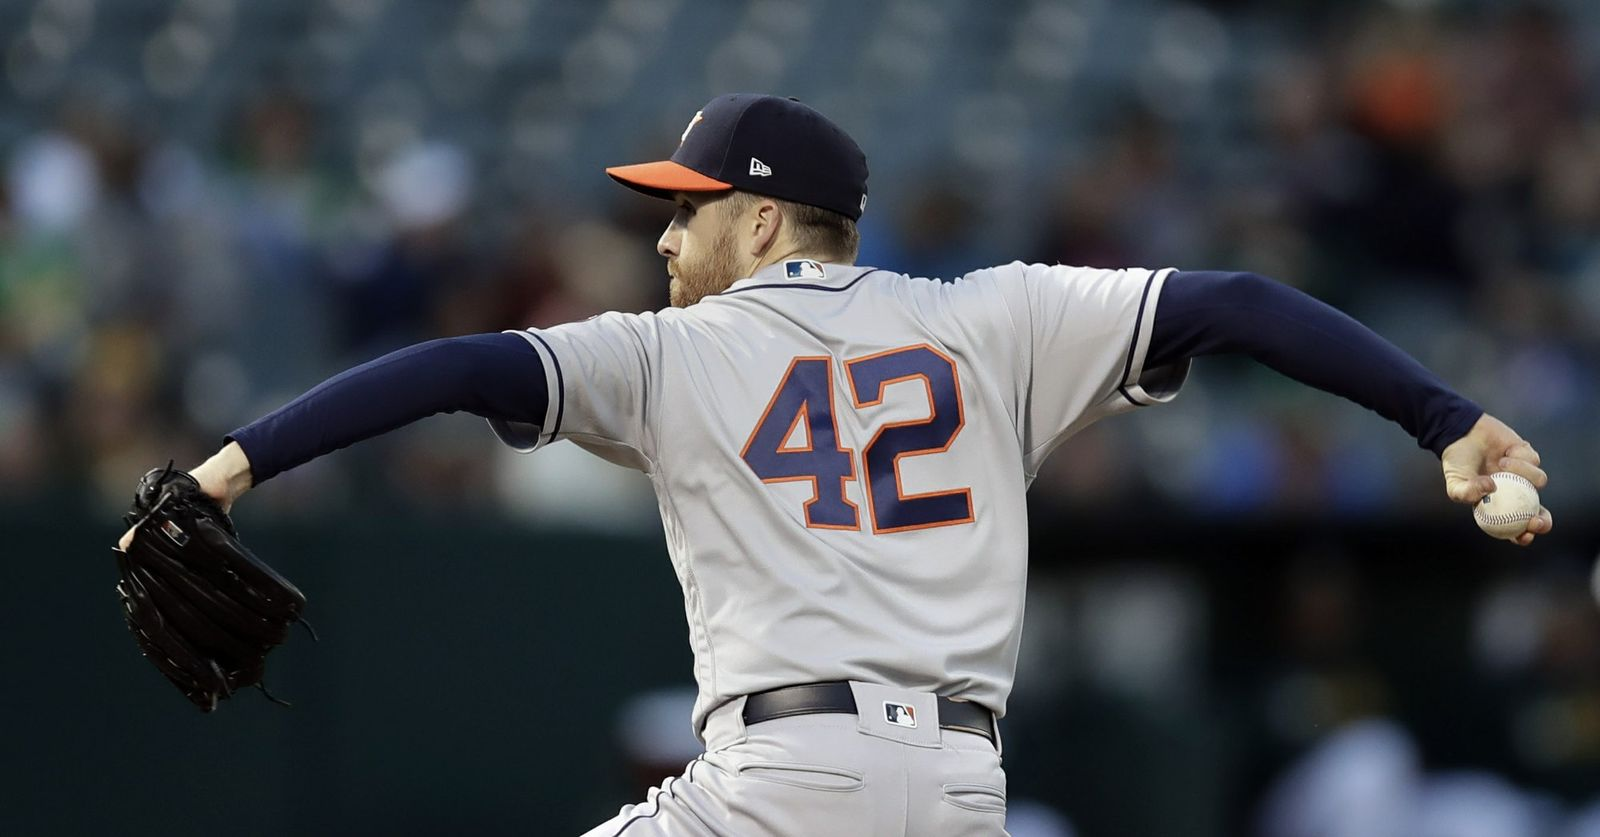 Houston Astros pitcher Collin McHugh works against the Oakland Athletics in the first inning of a baseball game, Tuesday, April 16, 2019, in Oakland, Calif. (AP Photo/Ben Margot)